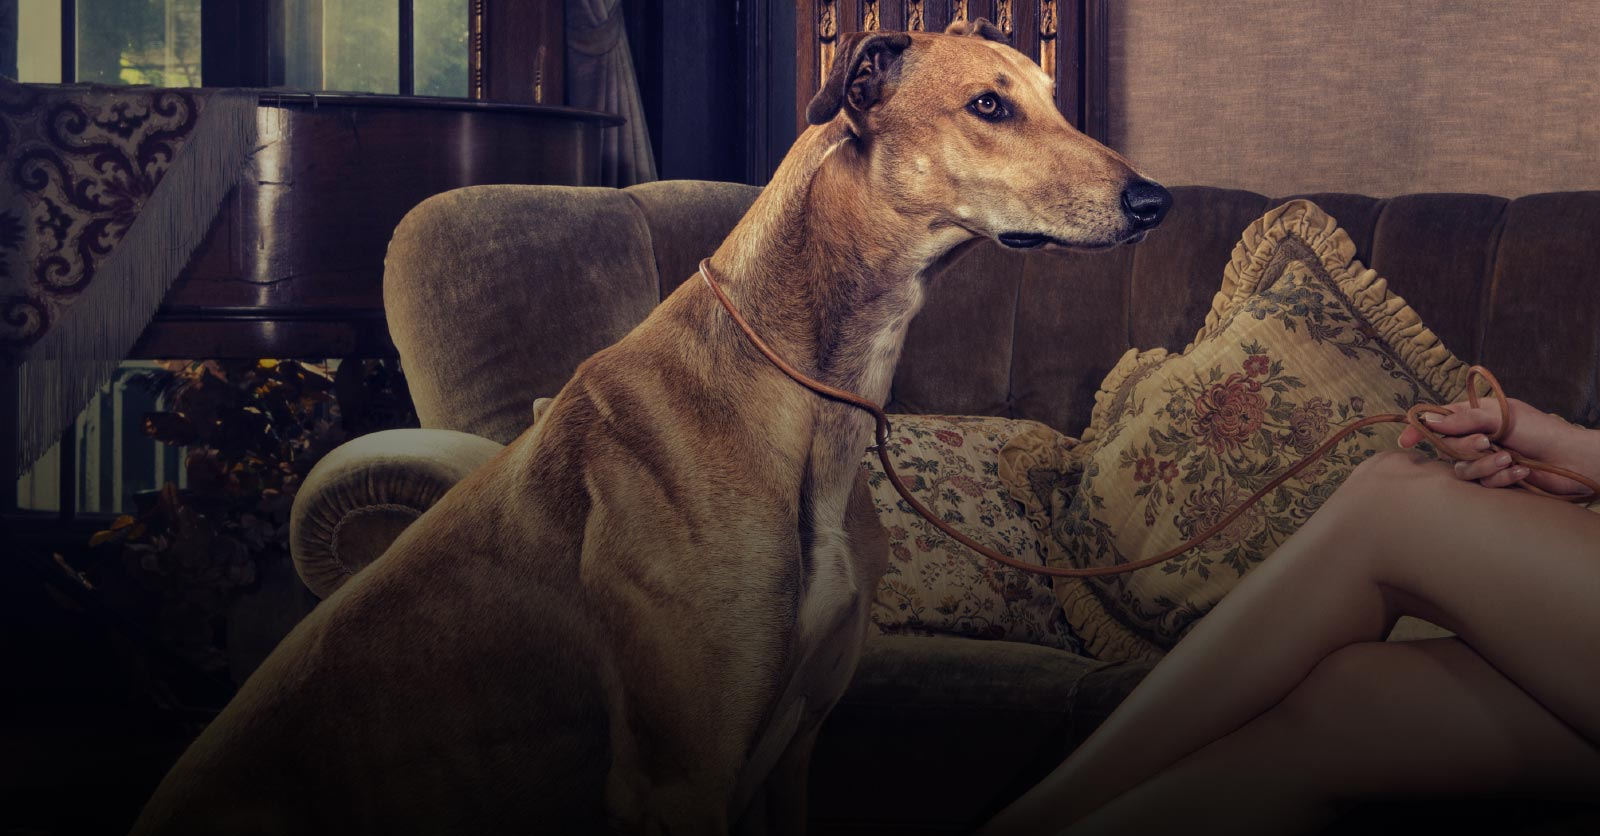 Pamper Your Pooch in the Lap of Luxury with Les Poochs